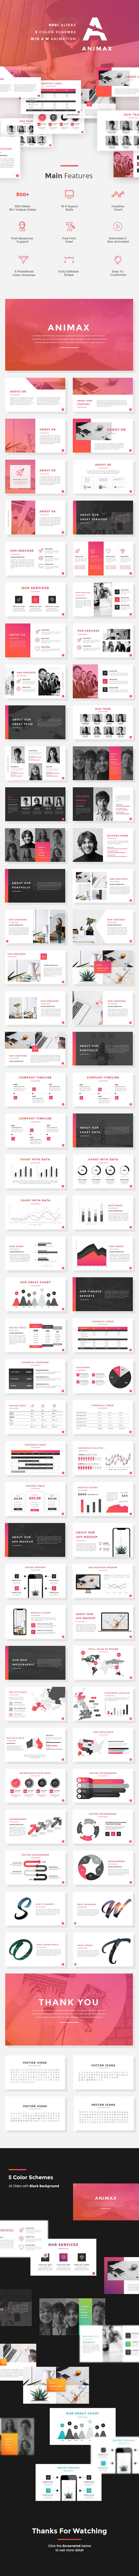 GraphicRiver Animax Finance and Marketing PowerPoint Template 21160047